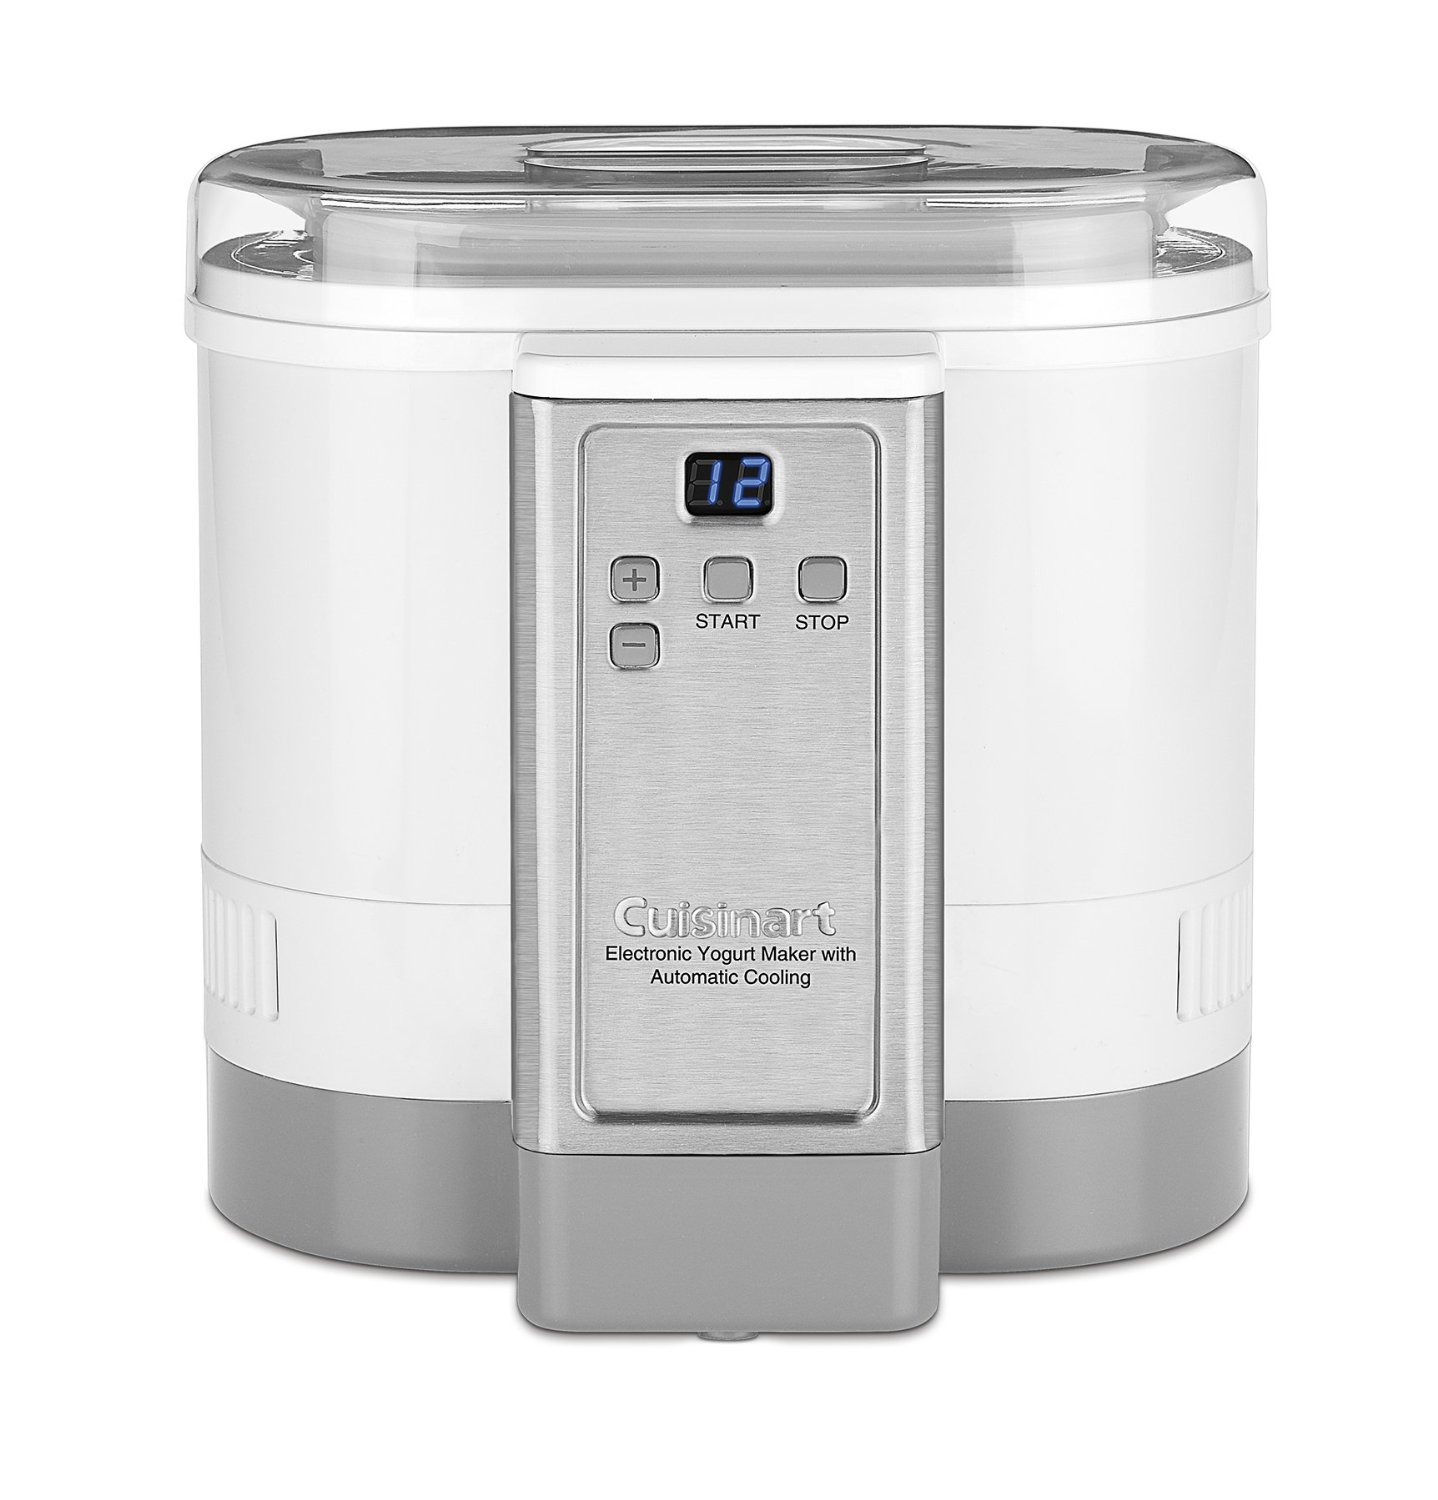 Cuisinart CYM-100 Electronic Yogurt Maker Review